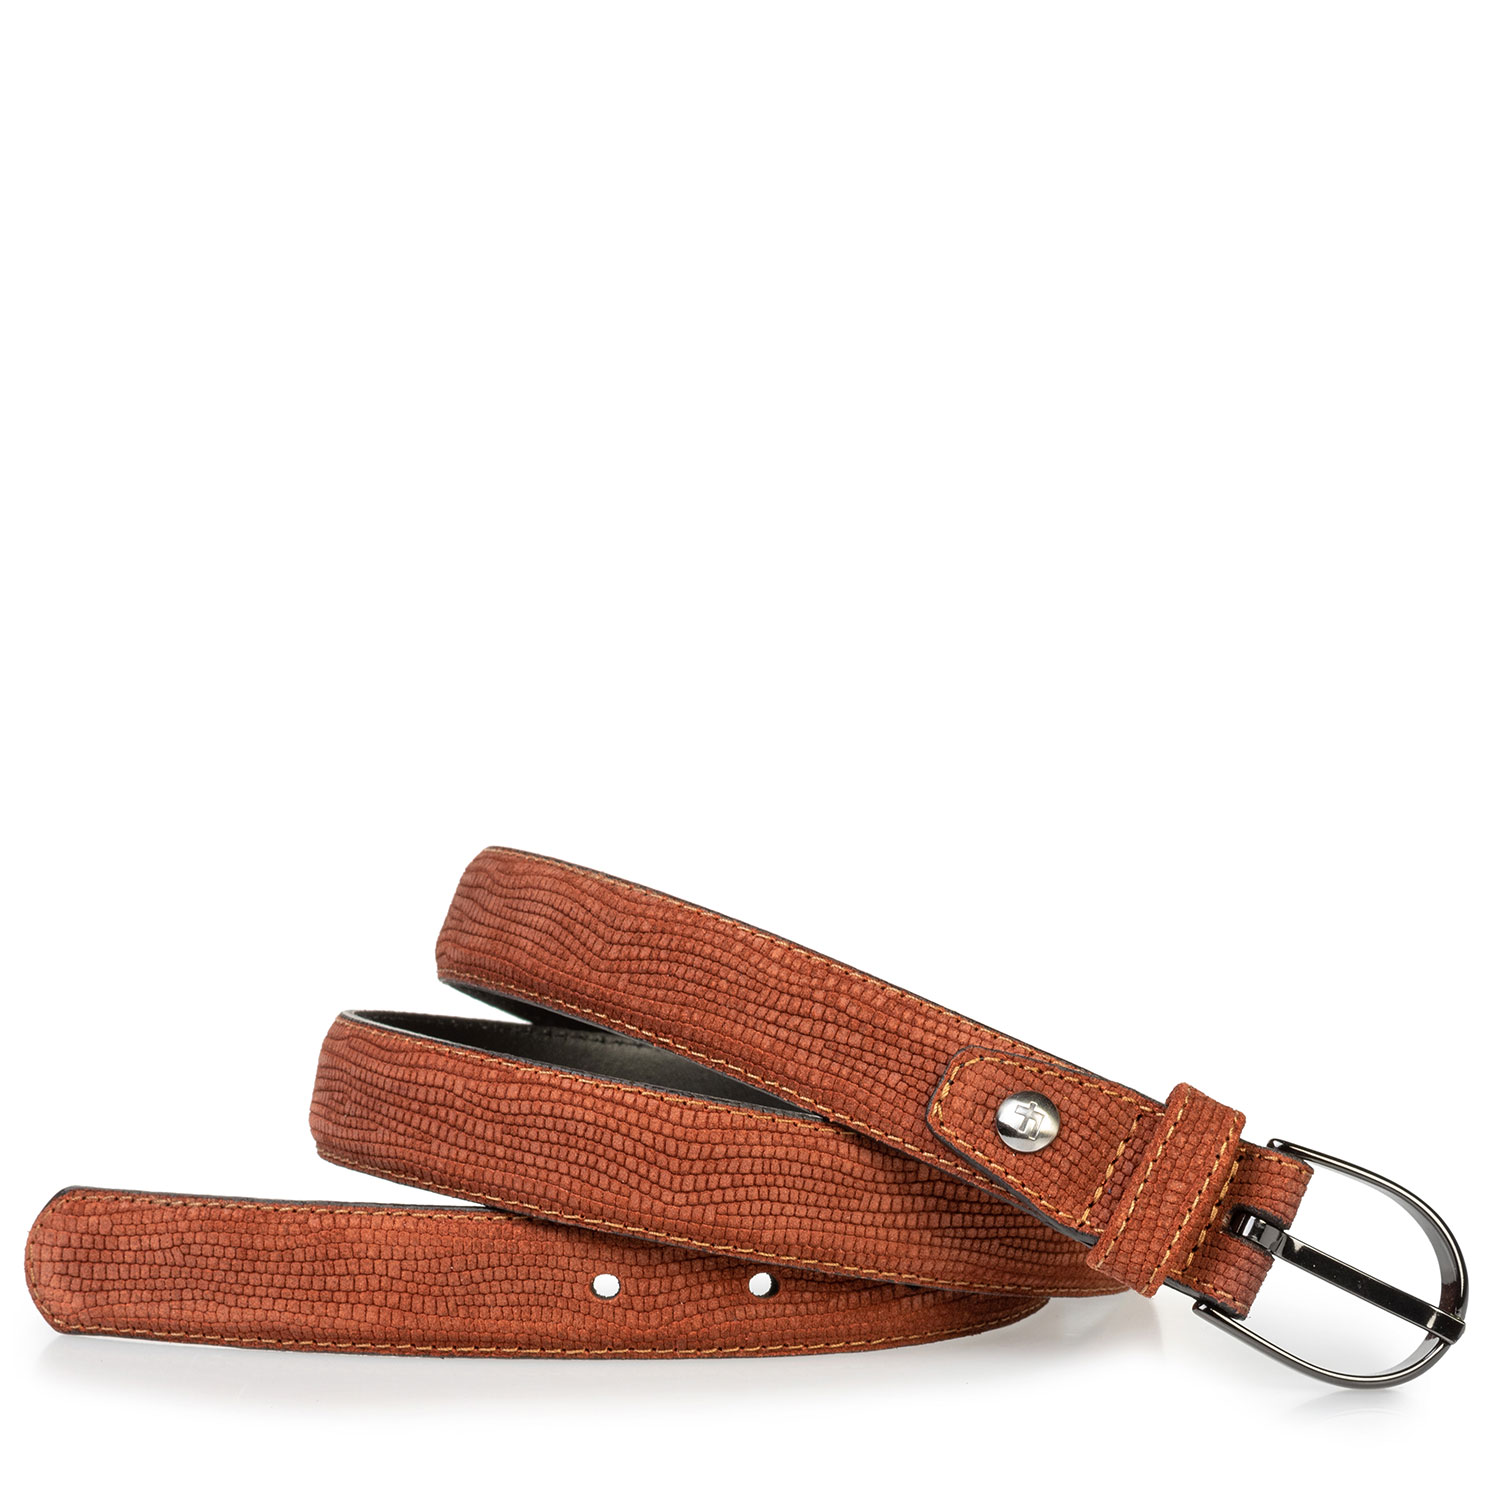 75813/95 - Women's belt suede leather brown